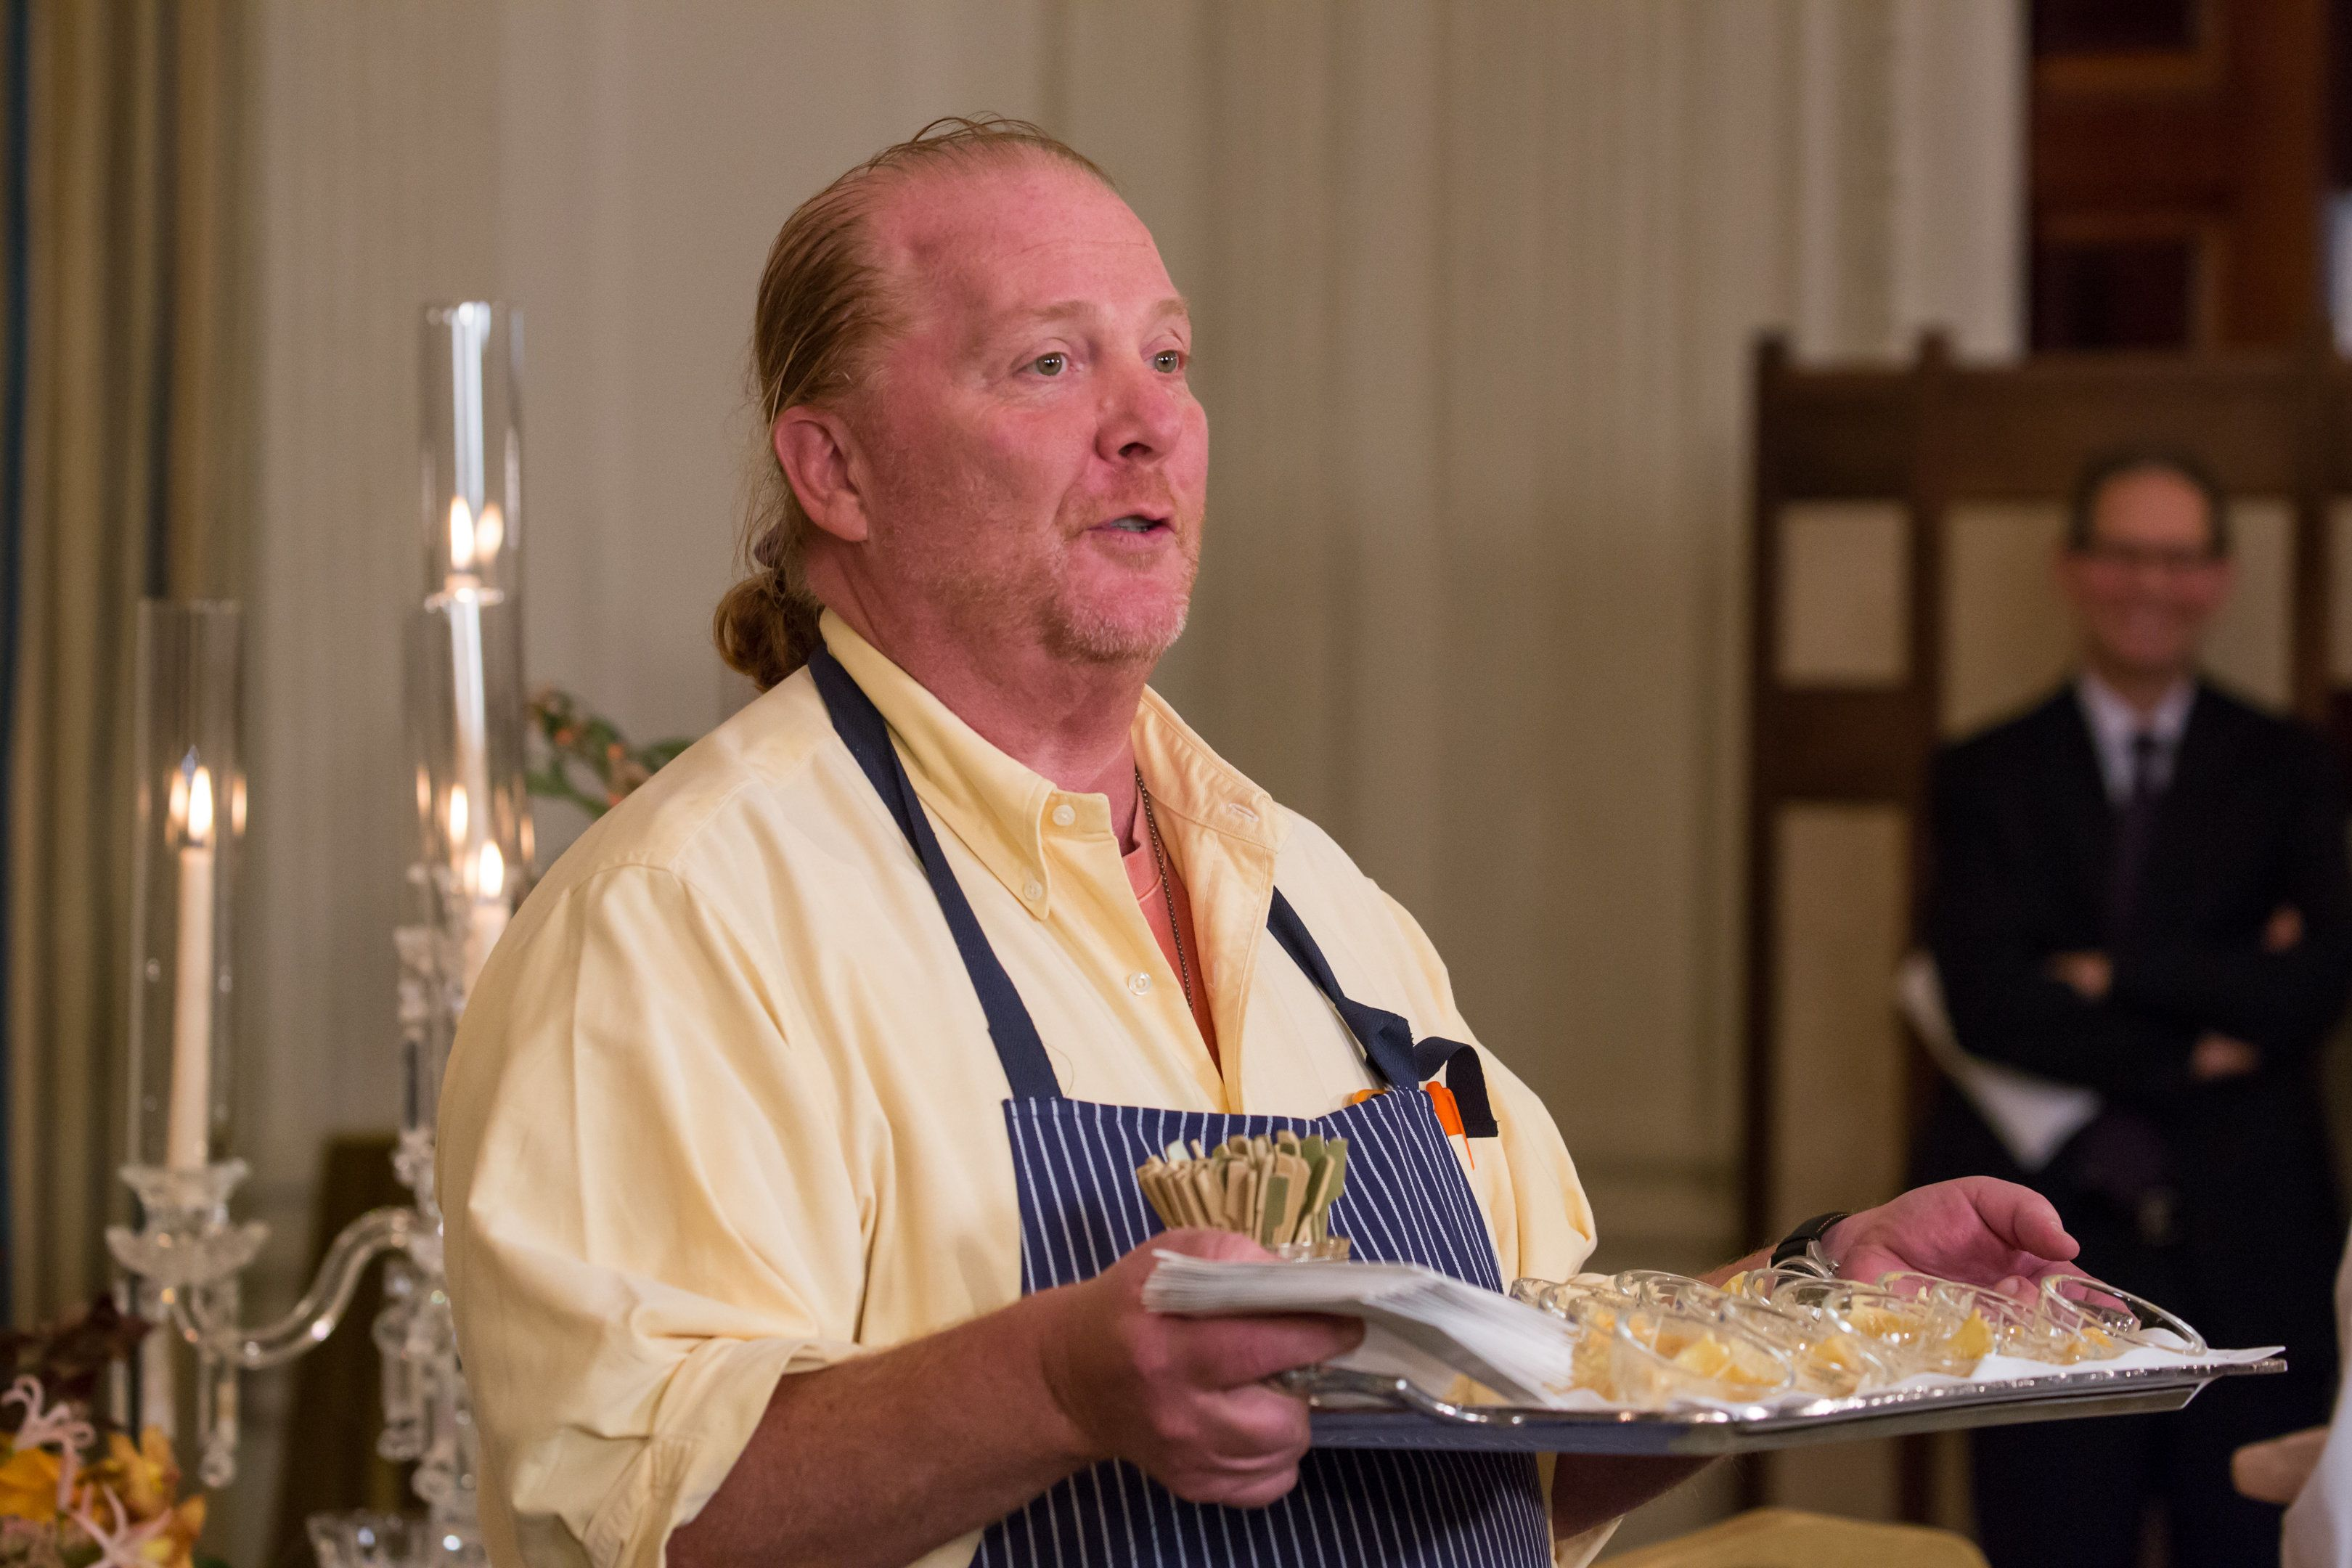 guest Chef Mario Batali, speaks to press during a press preview in the State Dining Room of the White House, in advance of the State Dinner in honor of the Official Visit of Prime Minister Matteo Renzi and his wife, Mrs. Agnese Landini, of Italy.Chef Batali served a sample from the menu to press of Sweet Potato Agnolotti with Butter and Sage.     in Washington, DC, USA, on October 17th, 2016. (Photo by Cheriss May/NurPhoto via Getty Images)